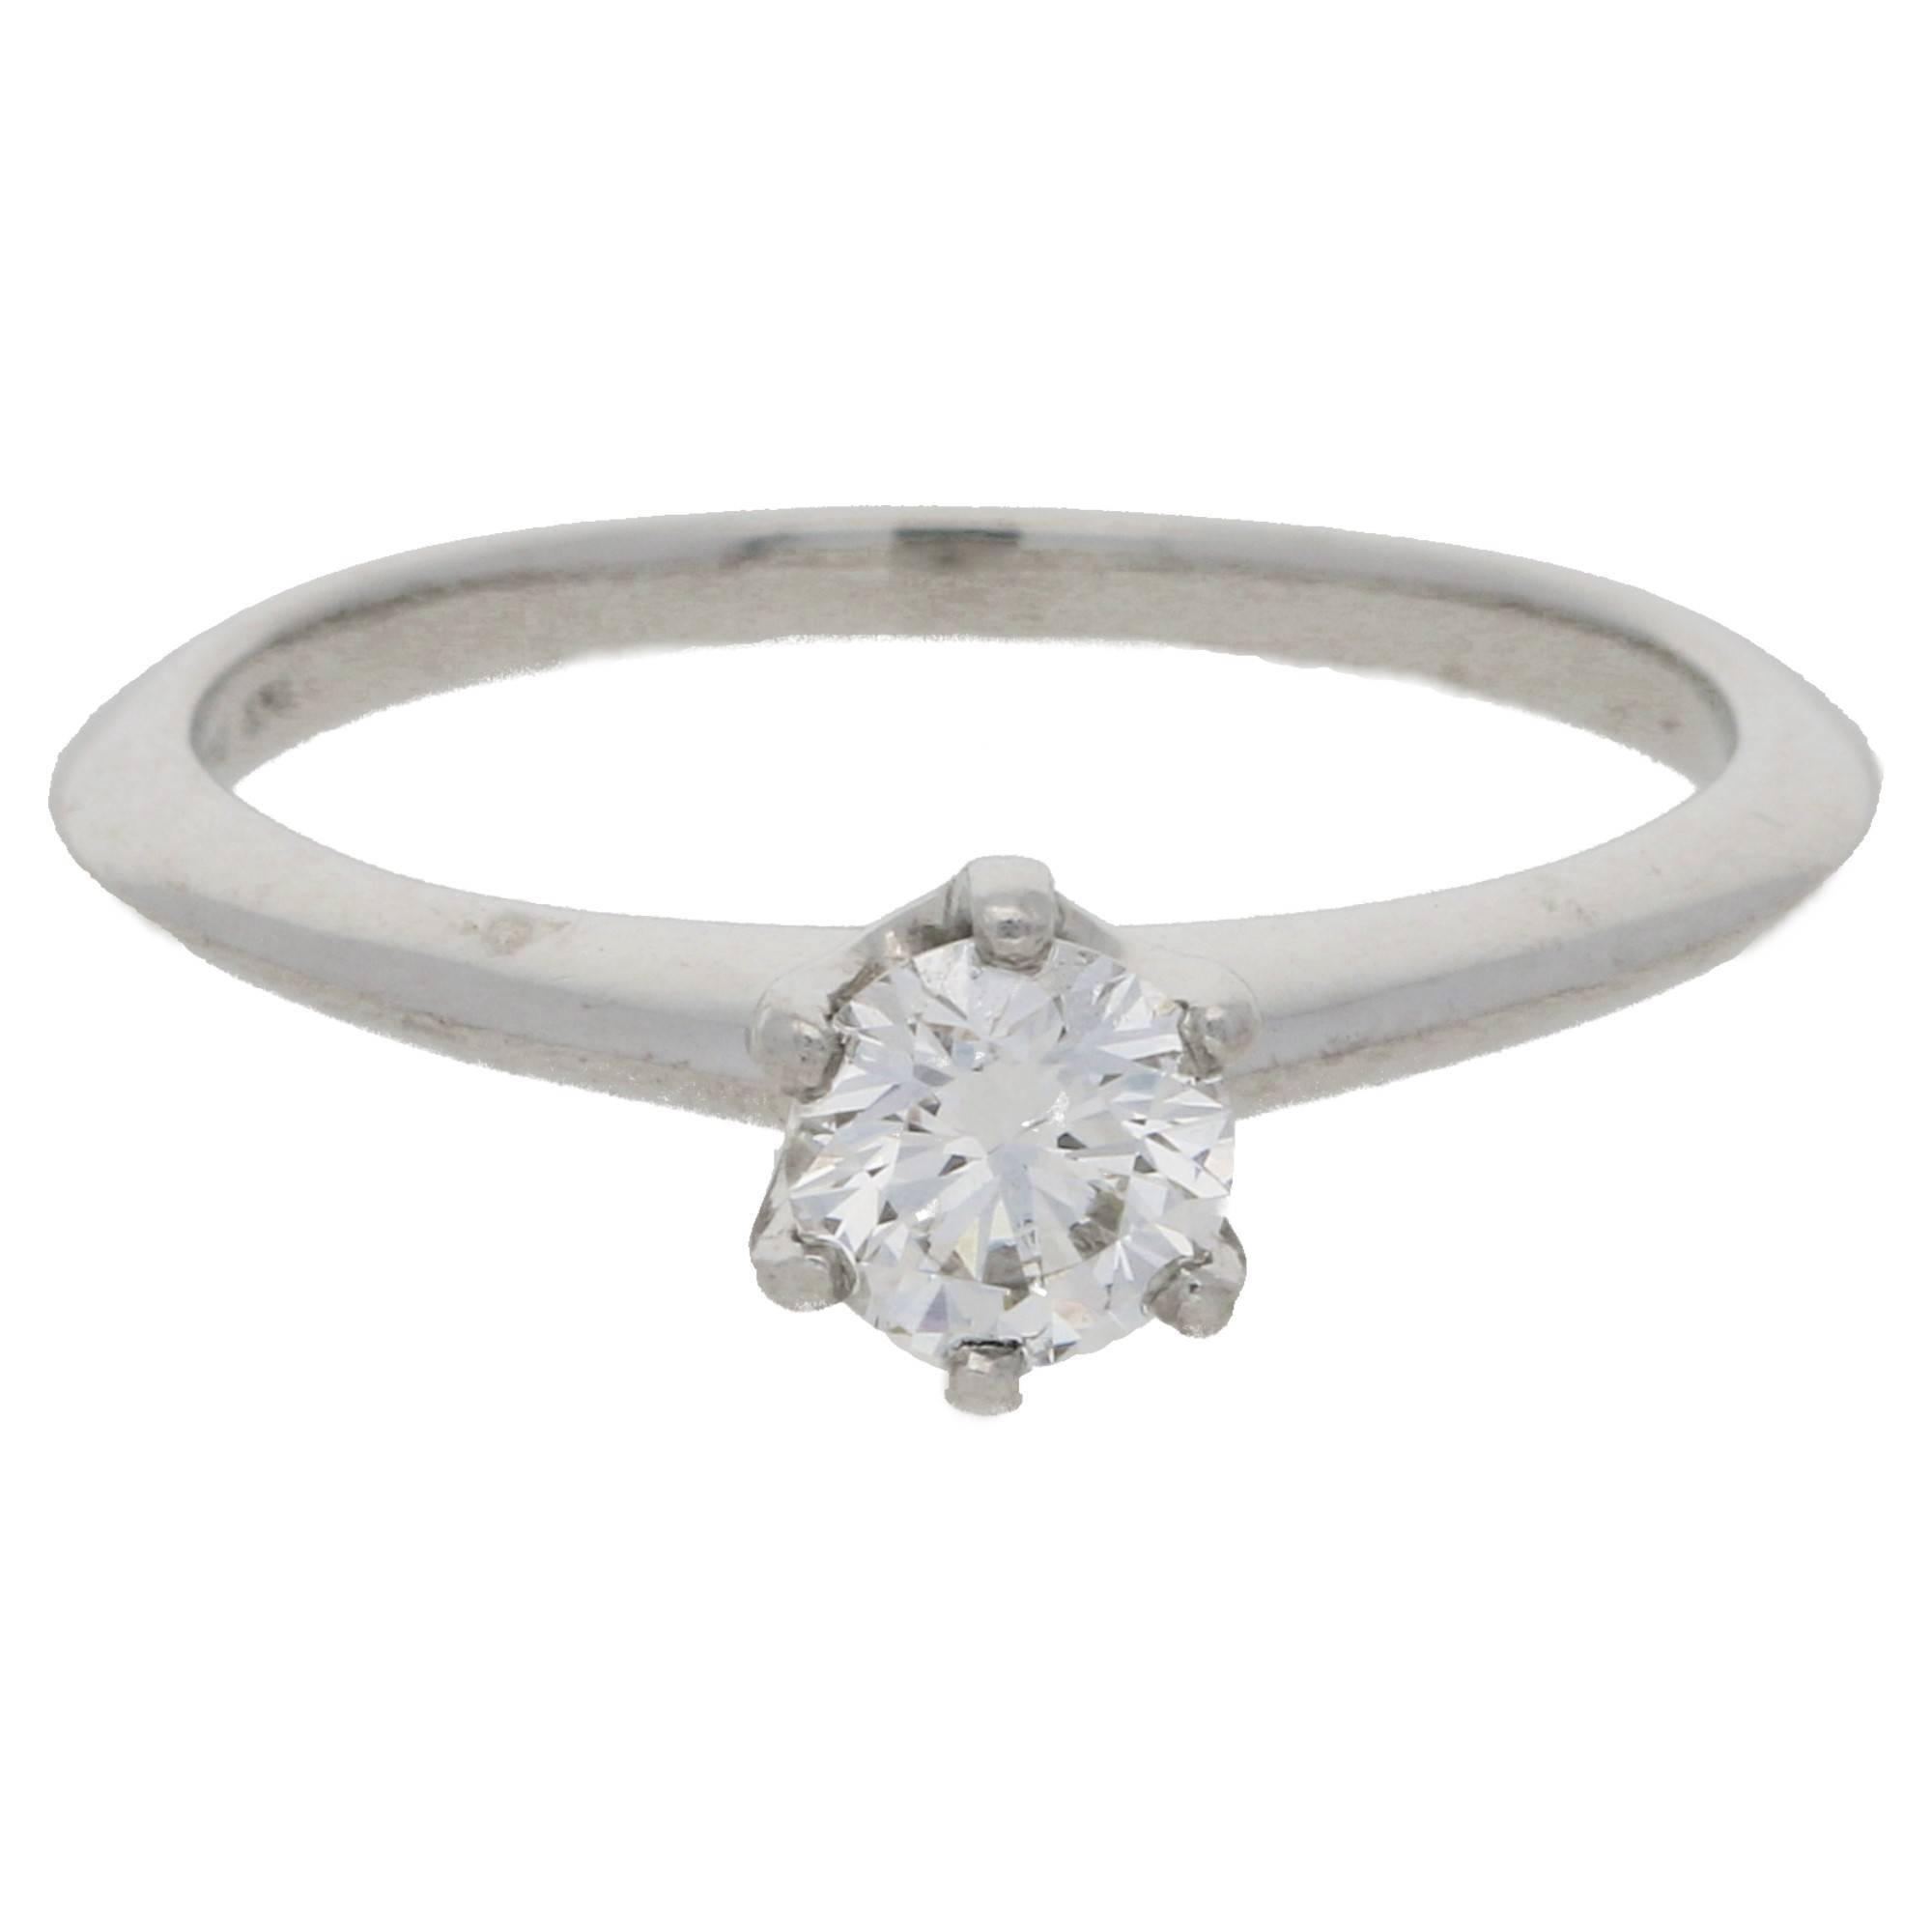 co in diamond rings amp tiffany loading engagement ebay itm image platinum ring fv is ctw